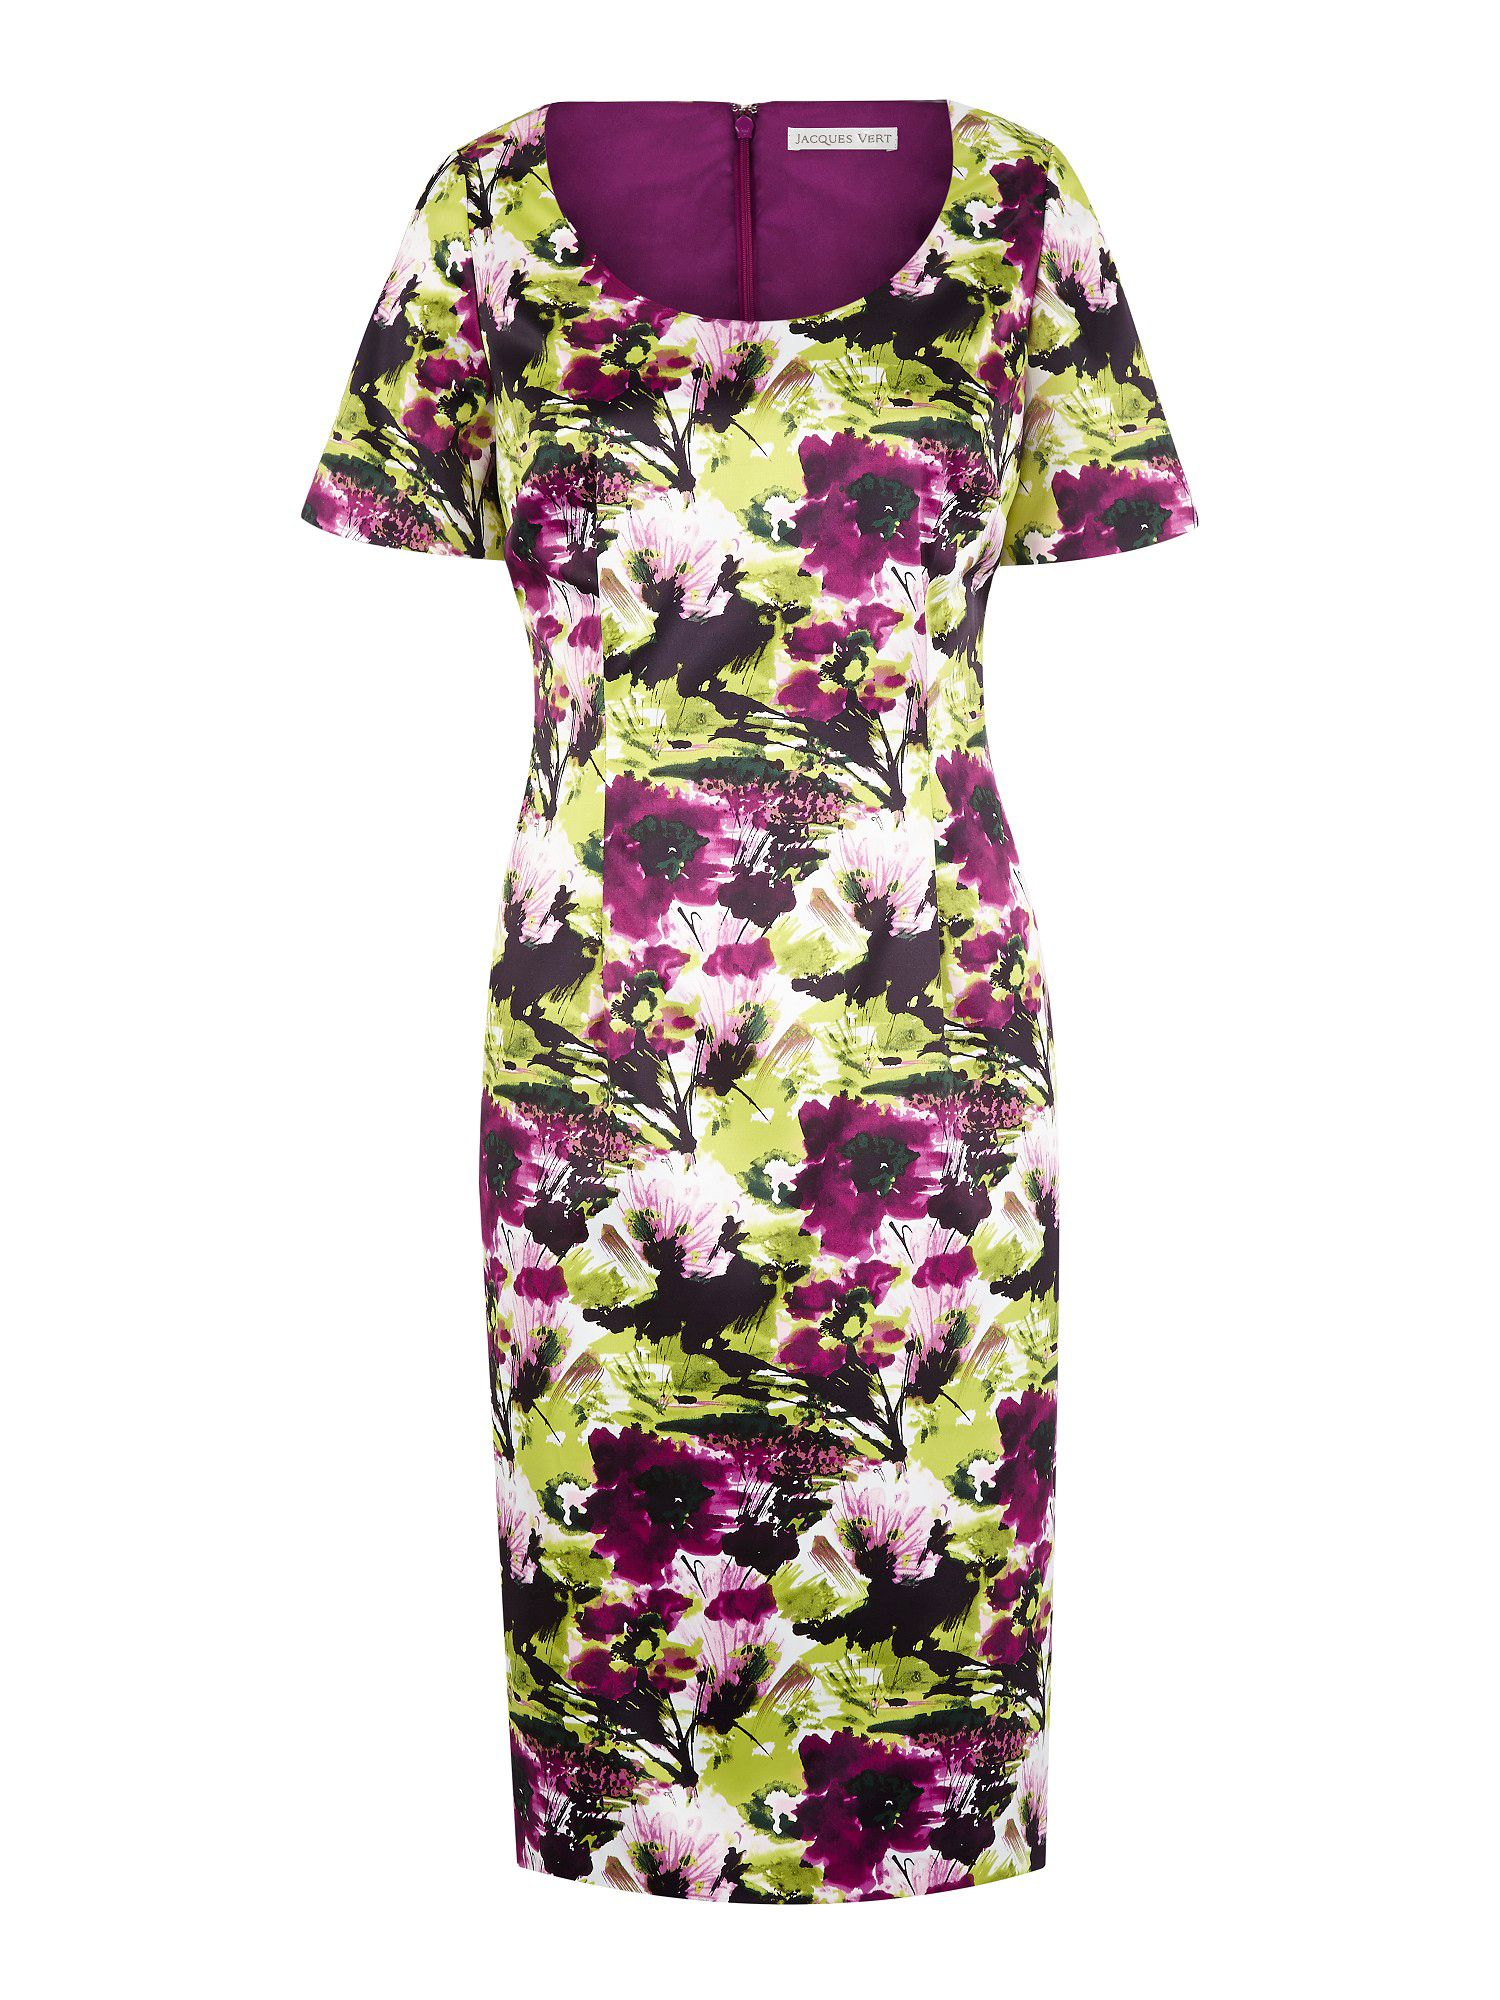 Bright garden floral shift dress